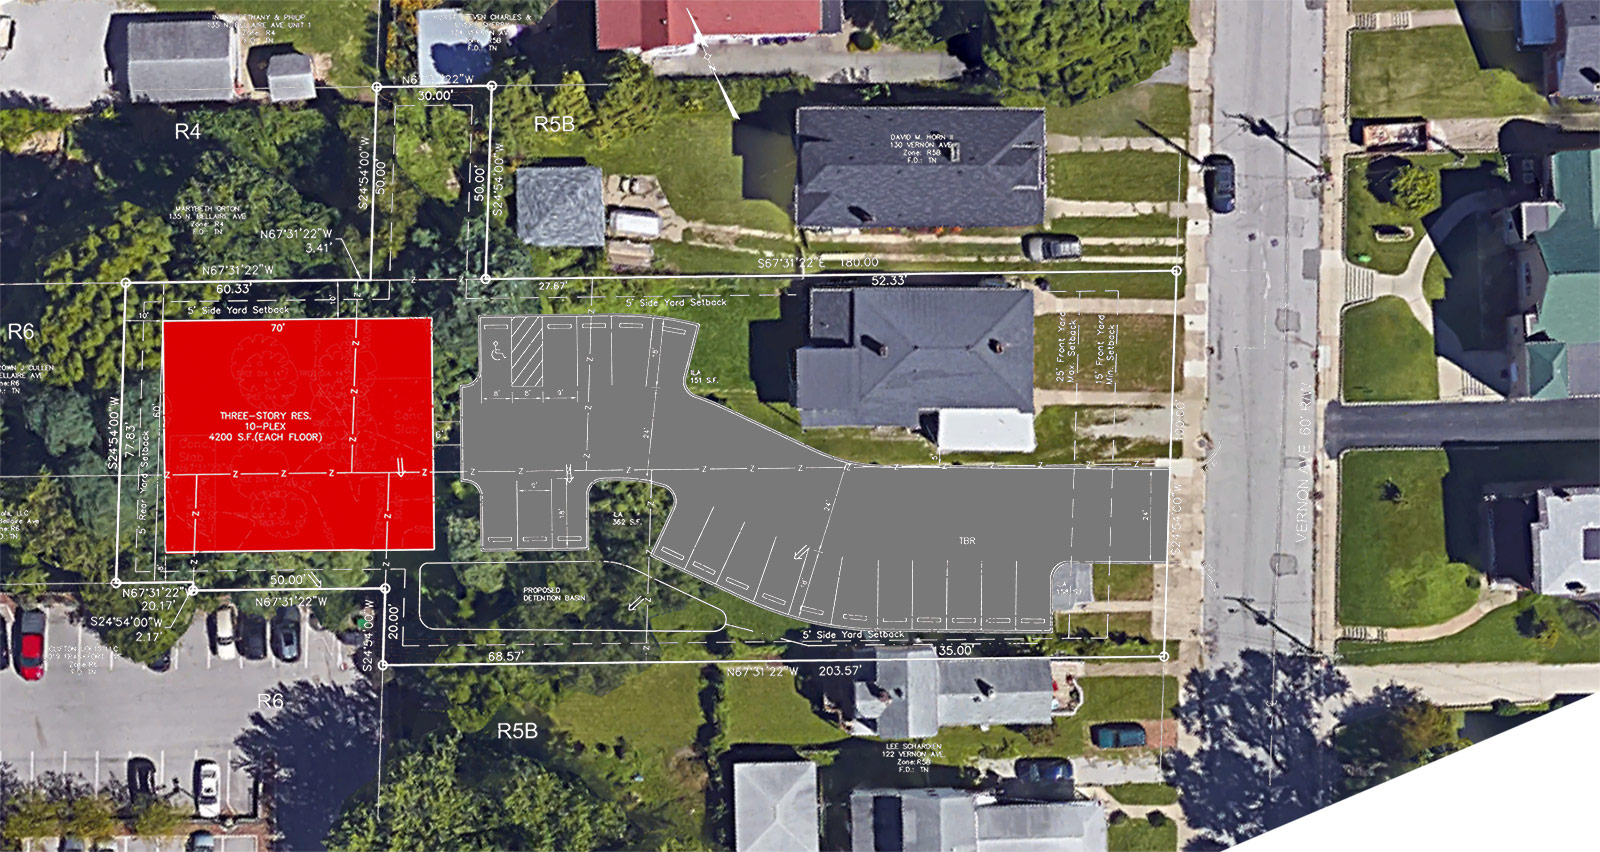 The Conti Apartments site plan overlaid on an aerial view of the site. (Metro Louisville; Google; Montage by Broken Sidewalk)